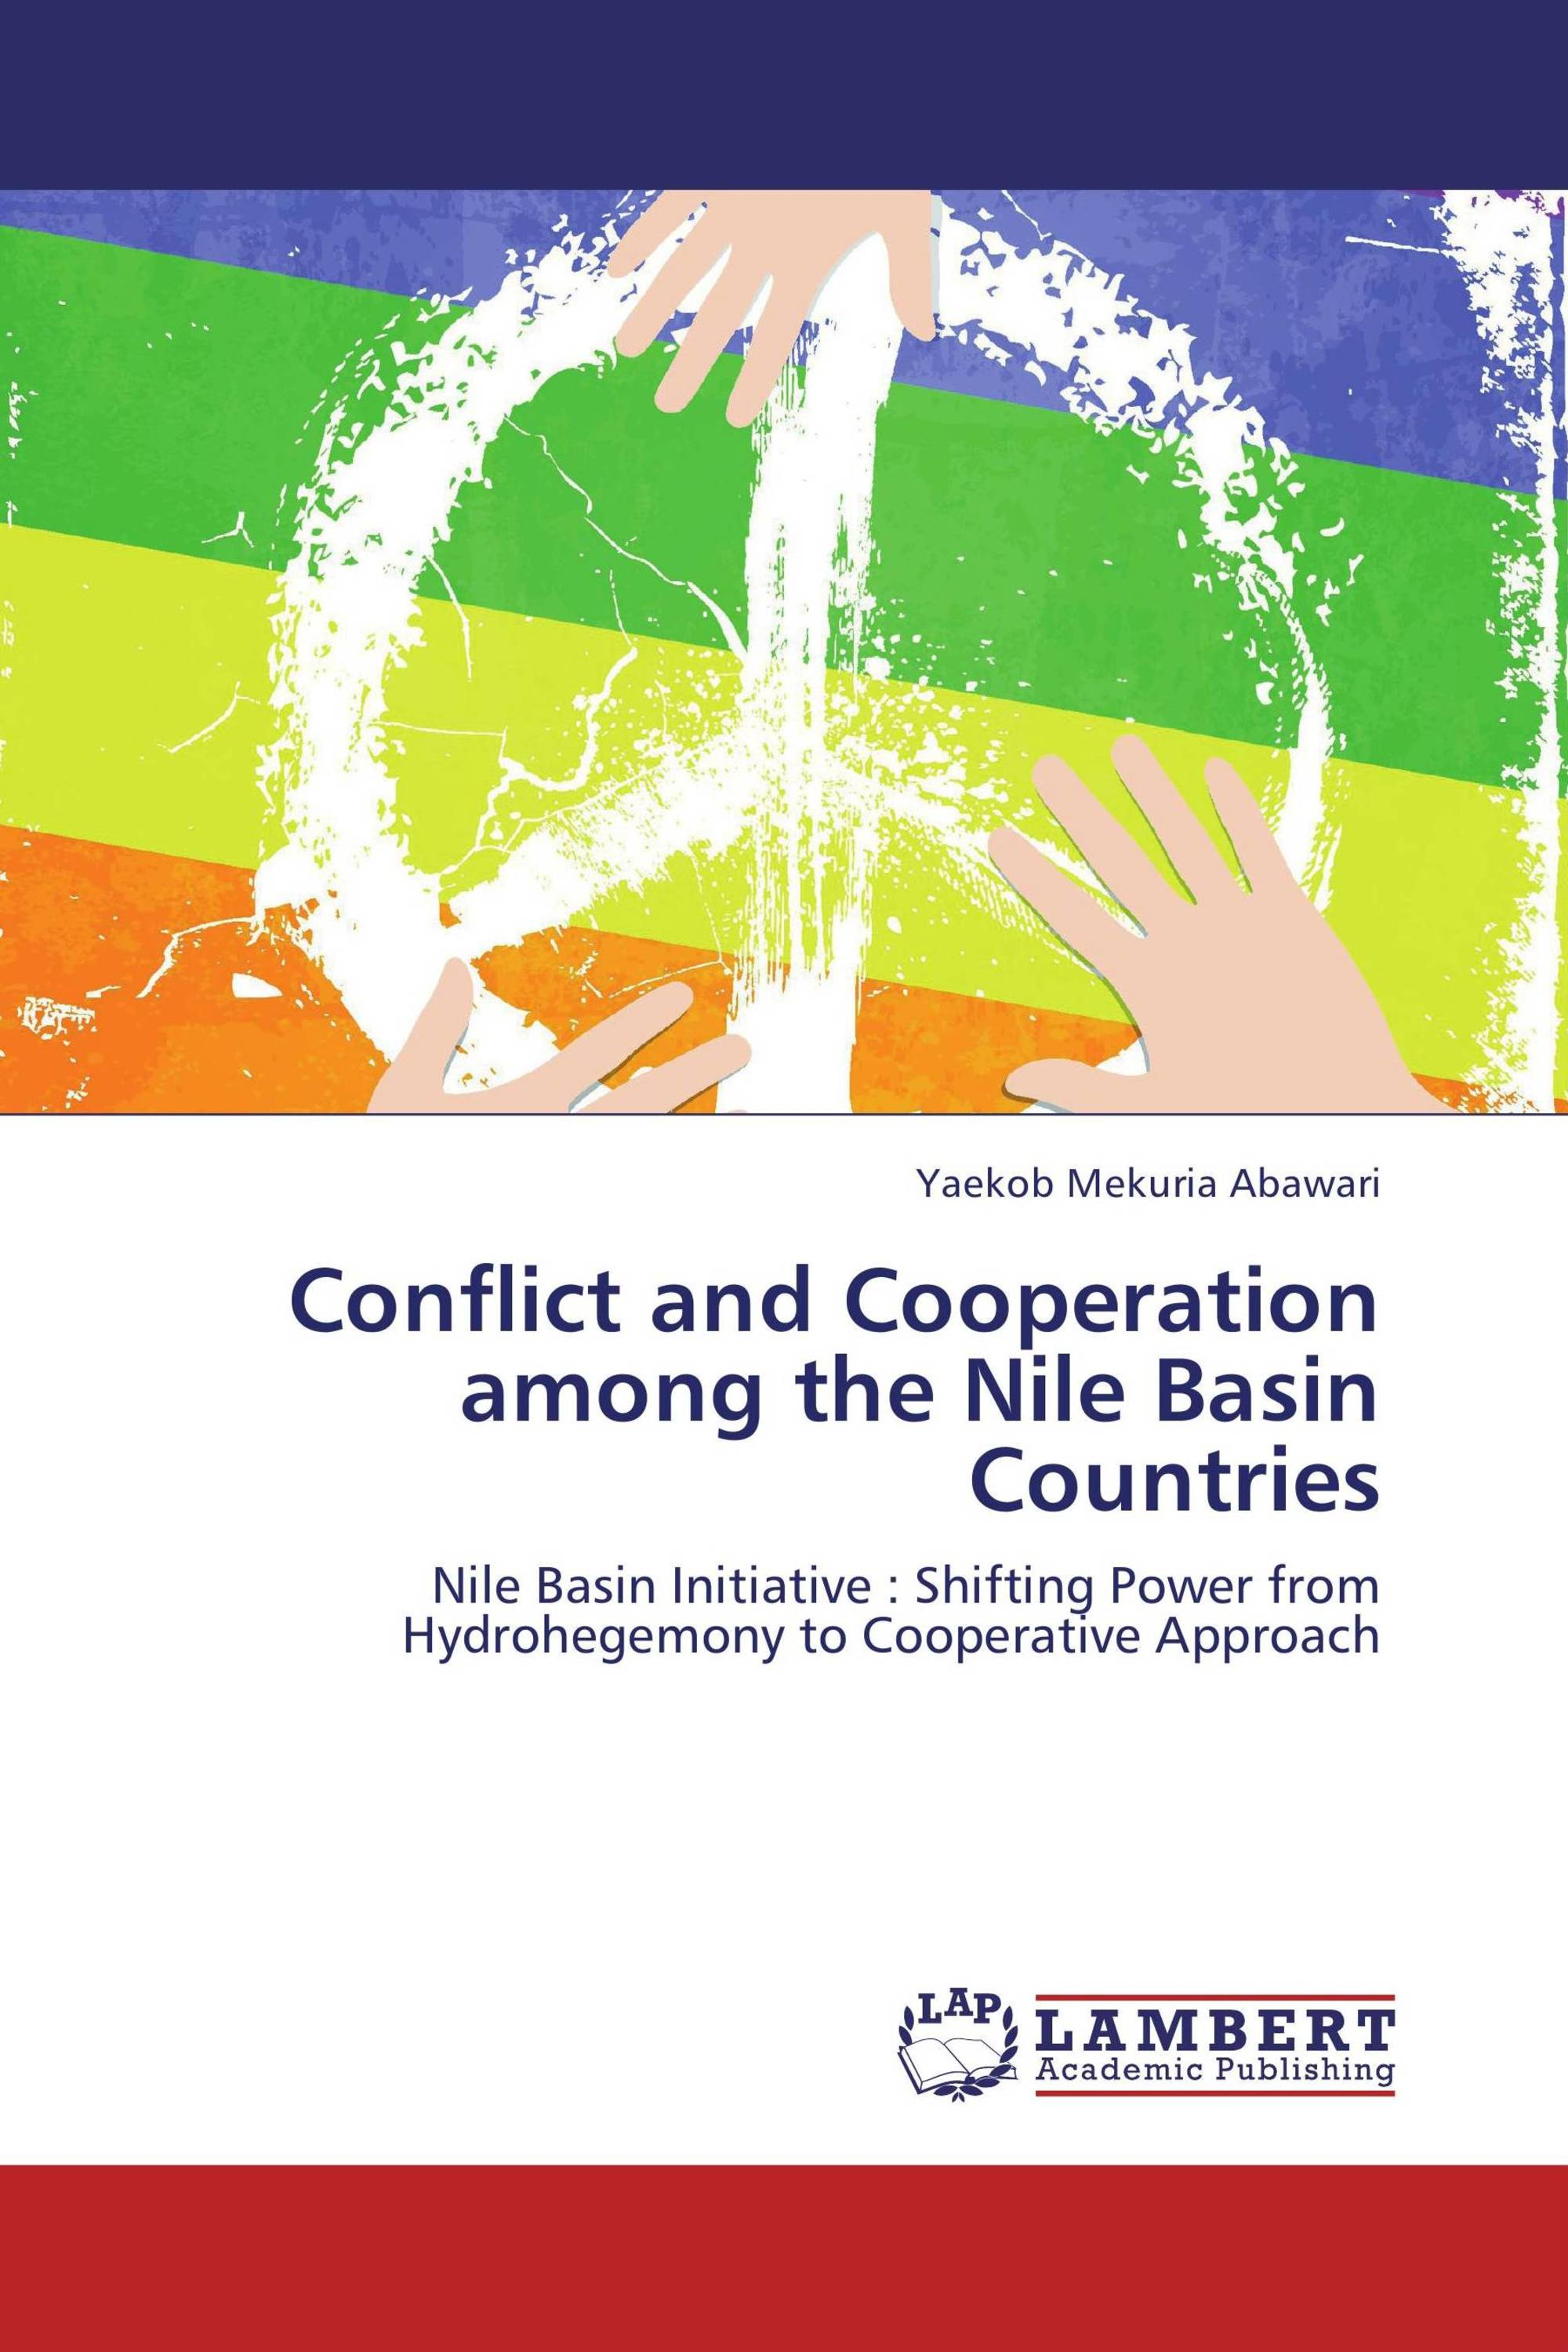 water conflict in nile basin among